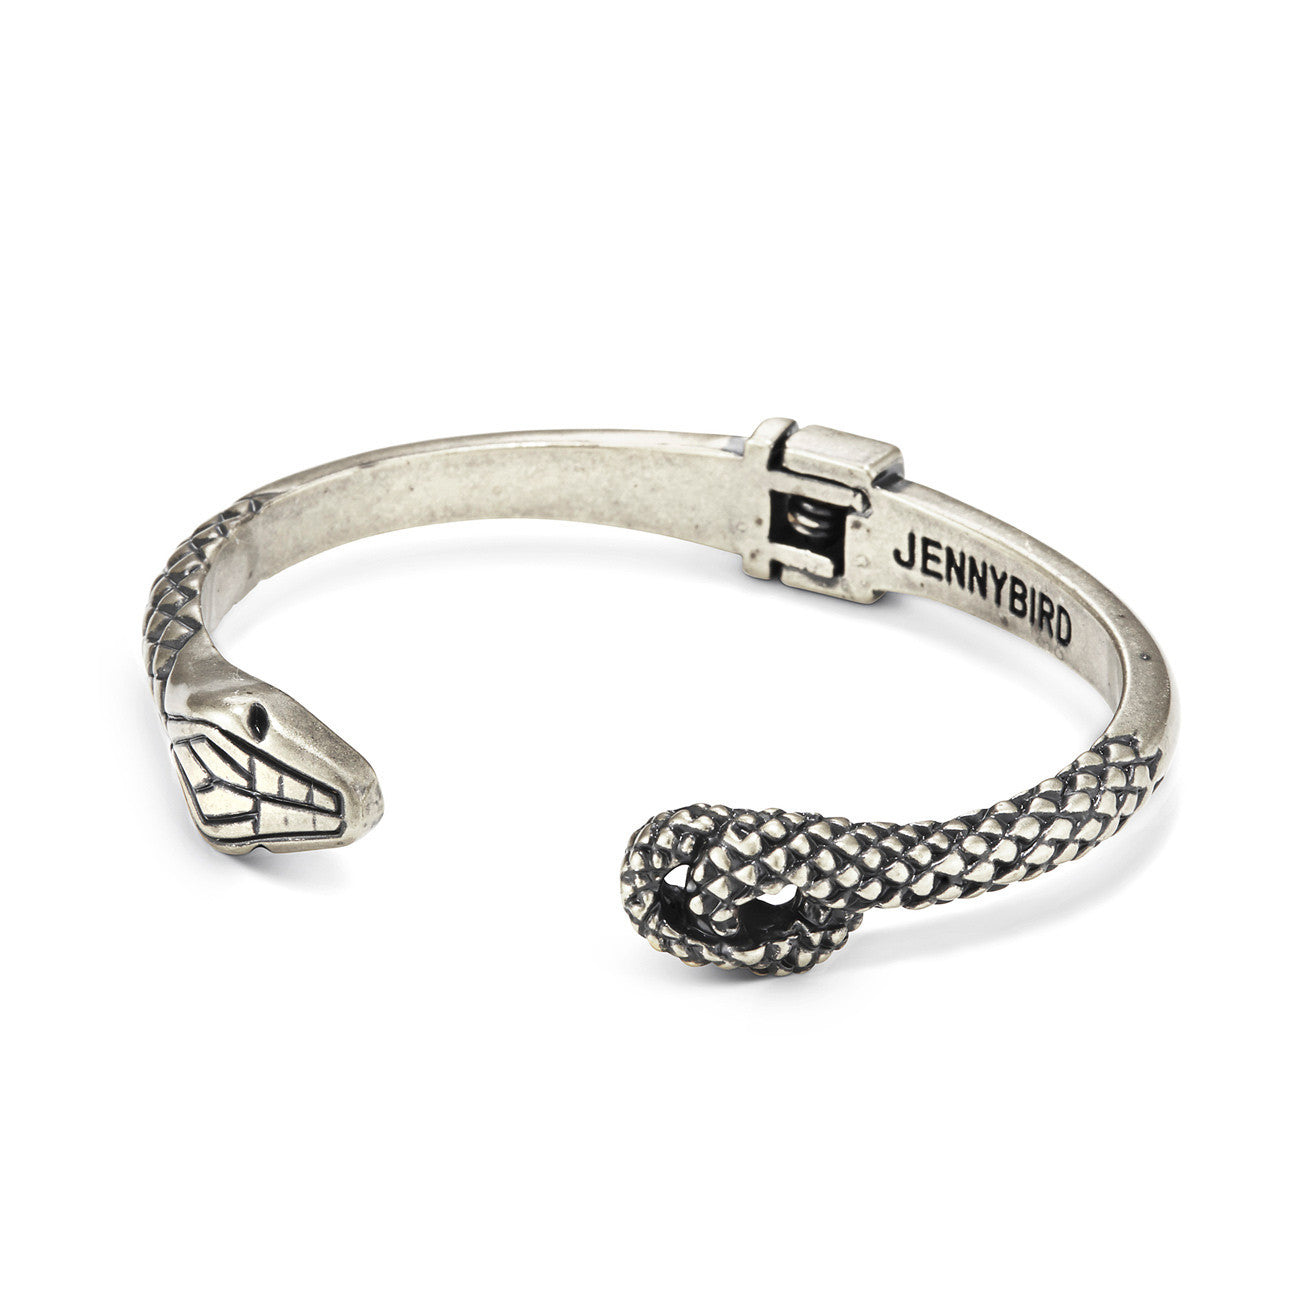 Kundali Prince Serpent Bangle in Silver by Jenny Bird